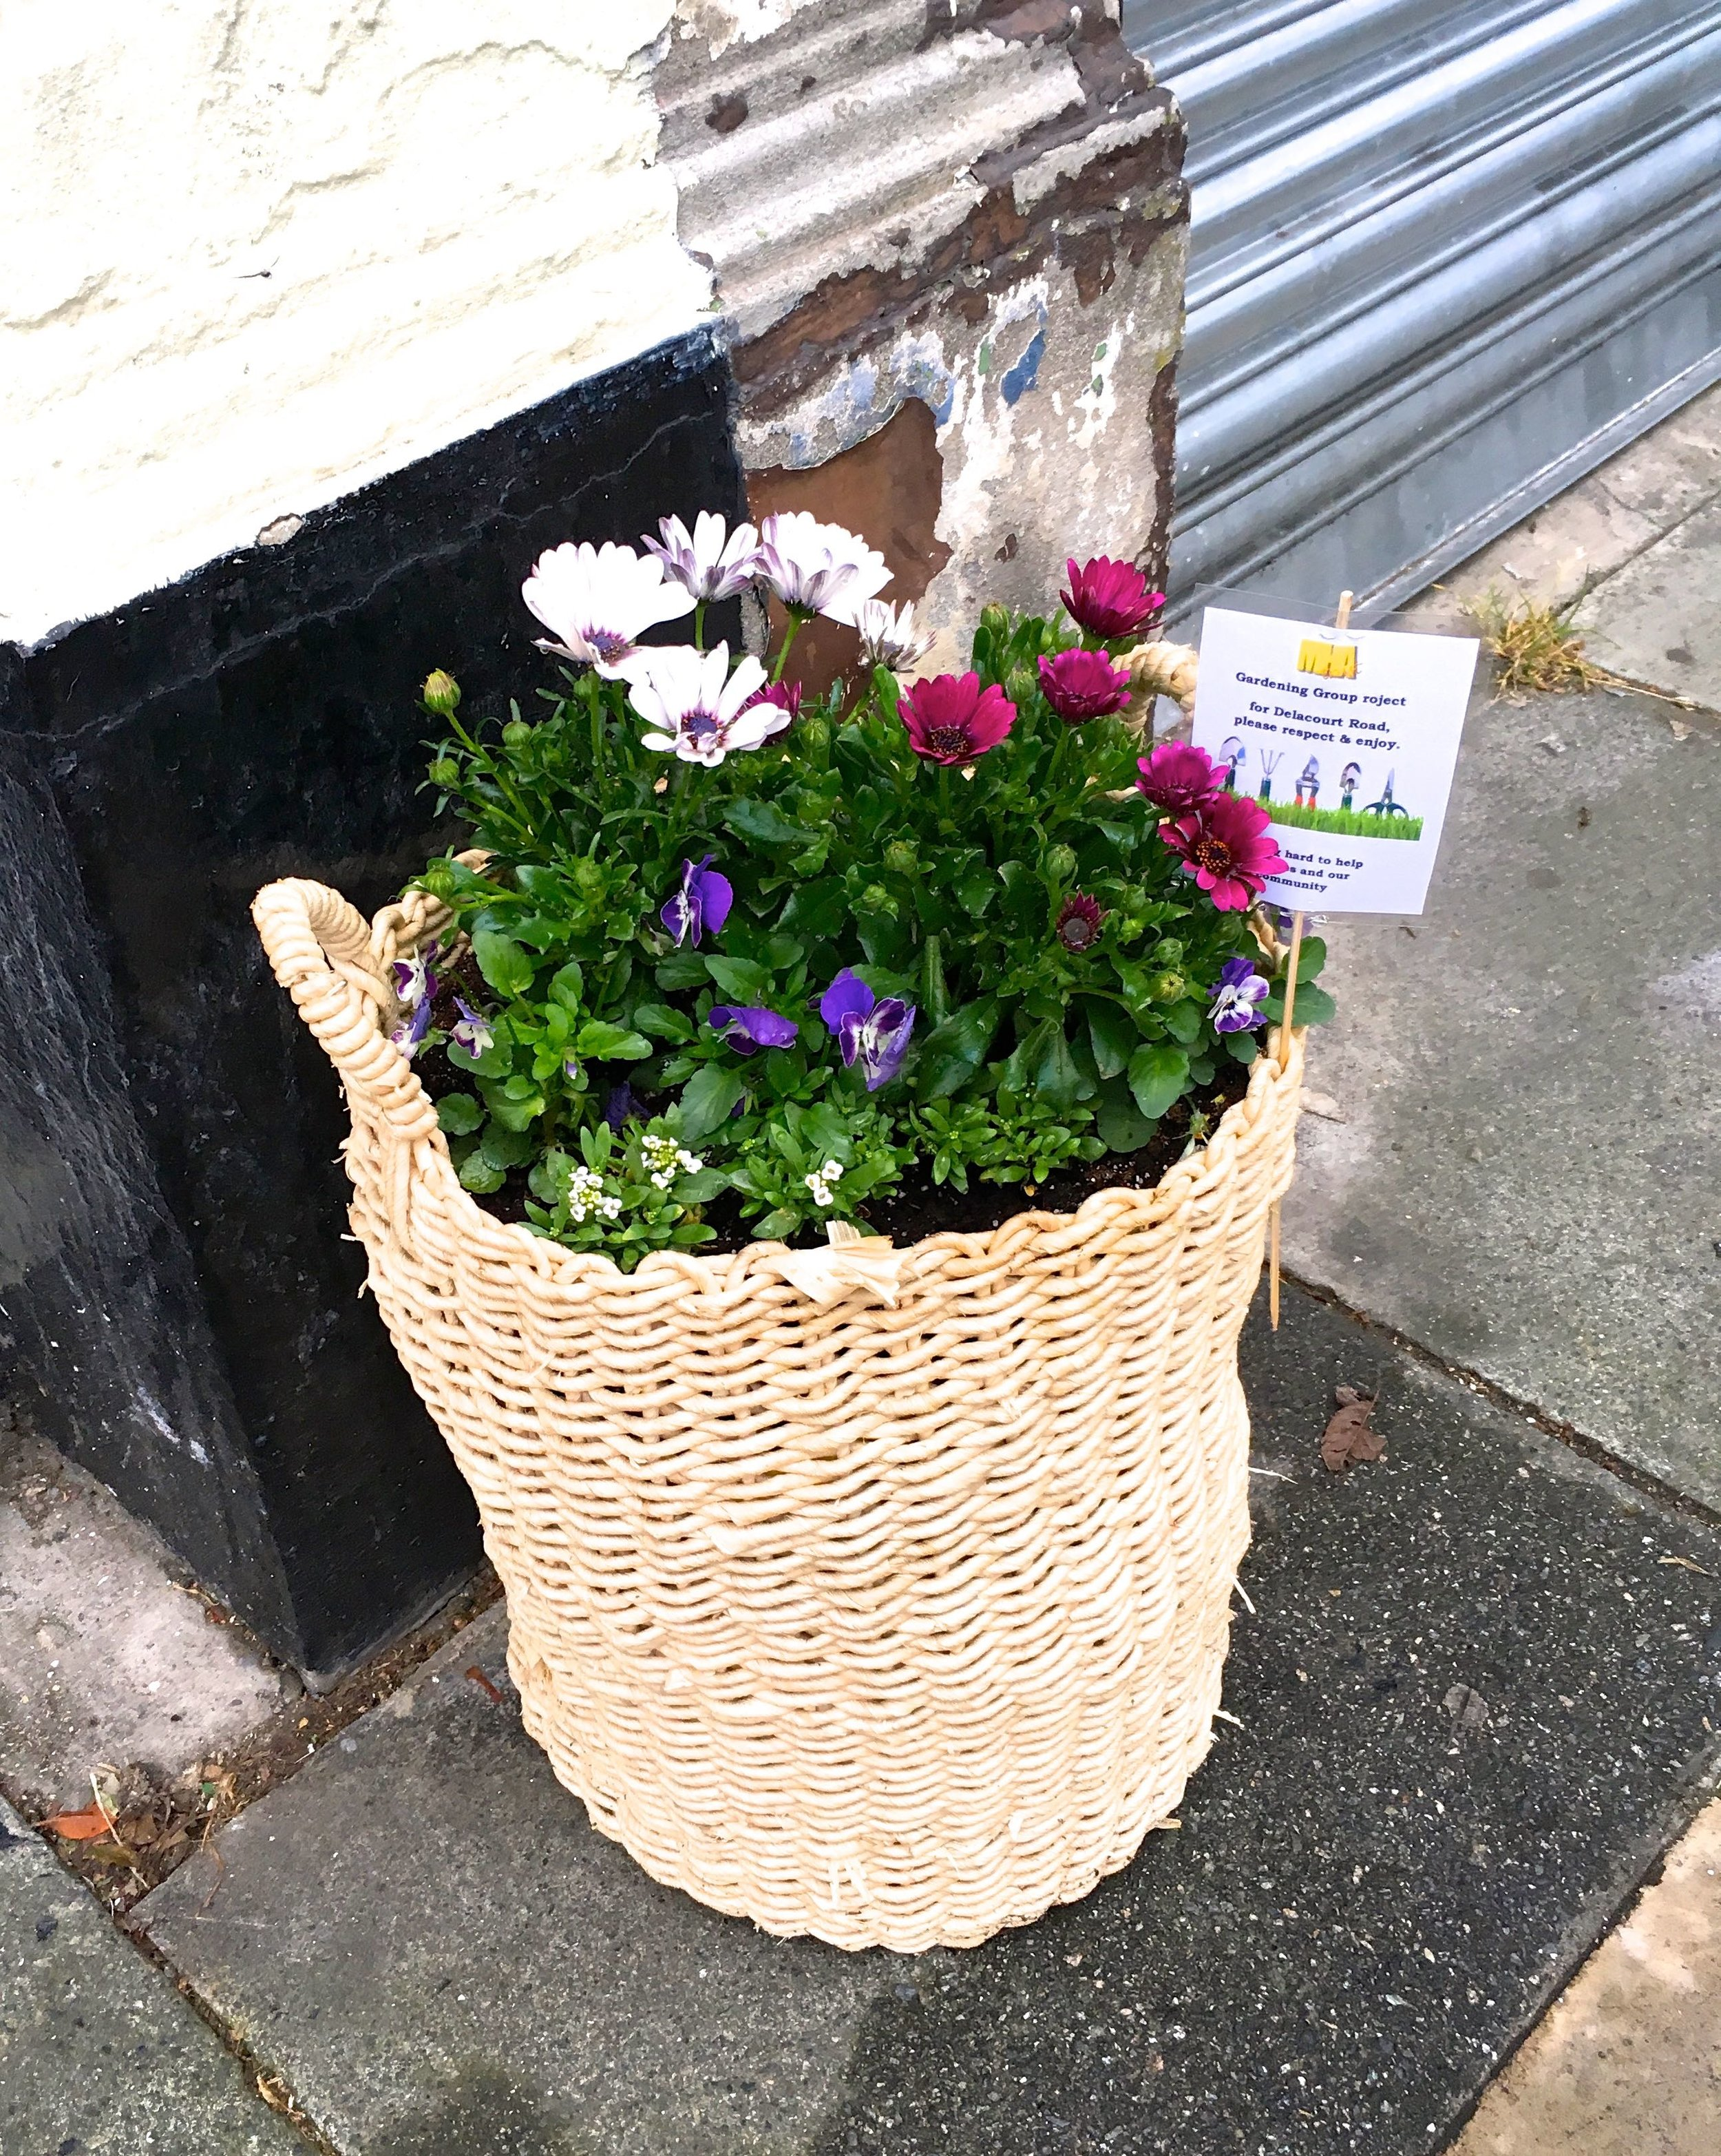 A BASKET OUTSIDE THE BABY SHOP as part of the Delacourt Road Gardening Group Project in Blackheath South London